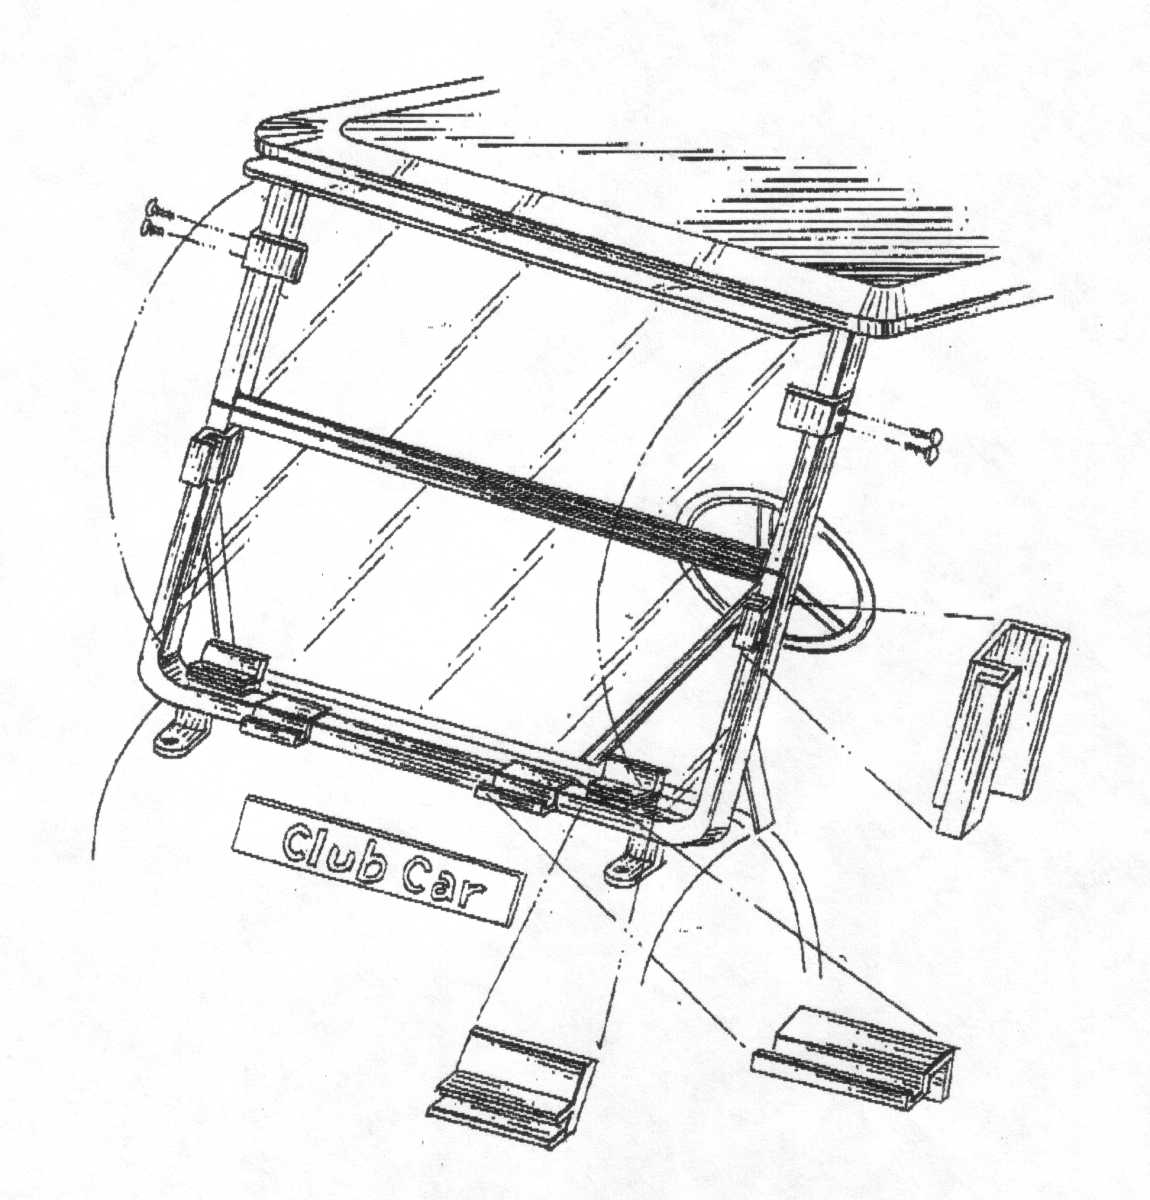 wiring diagram for club car golf cart ceiling fan double switch turf 2 1989